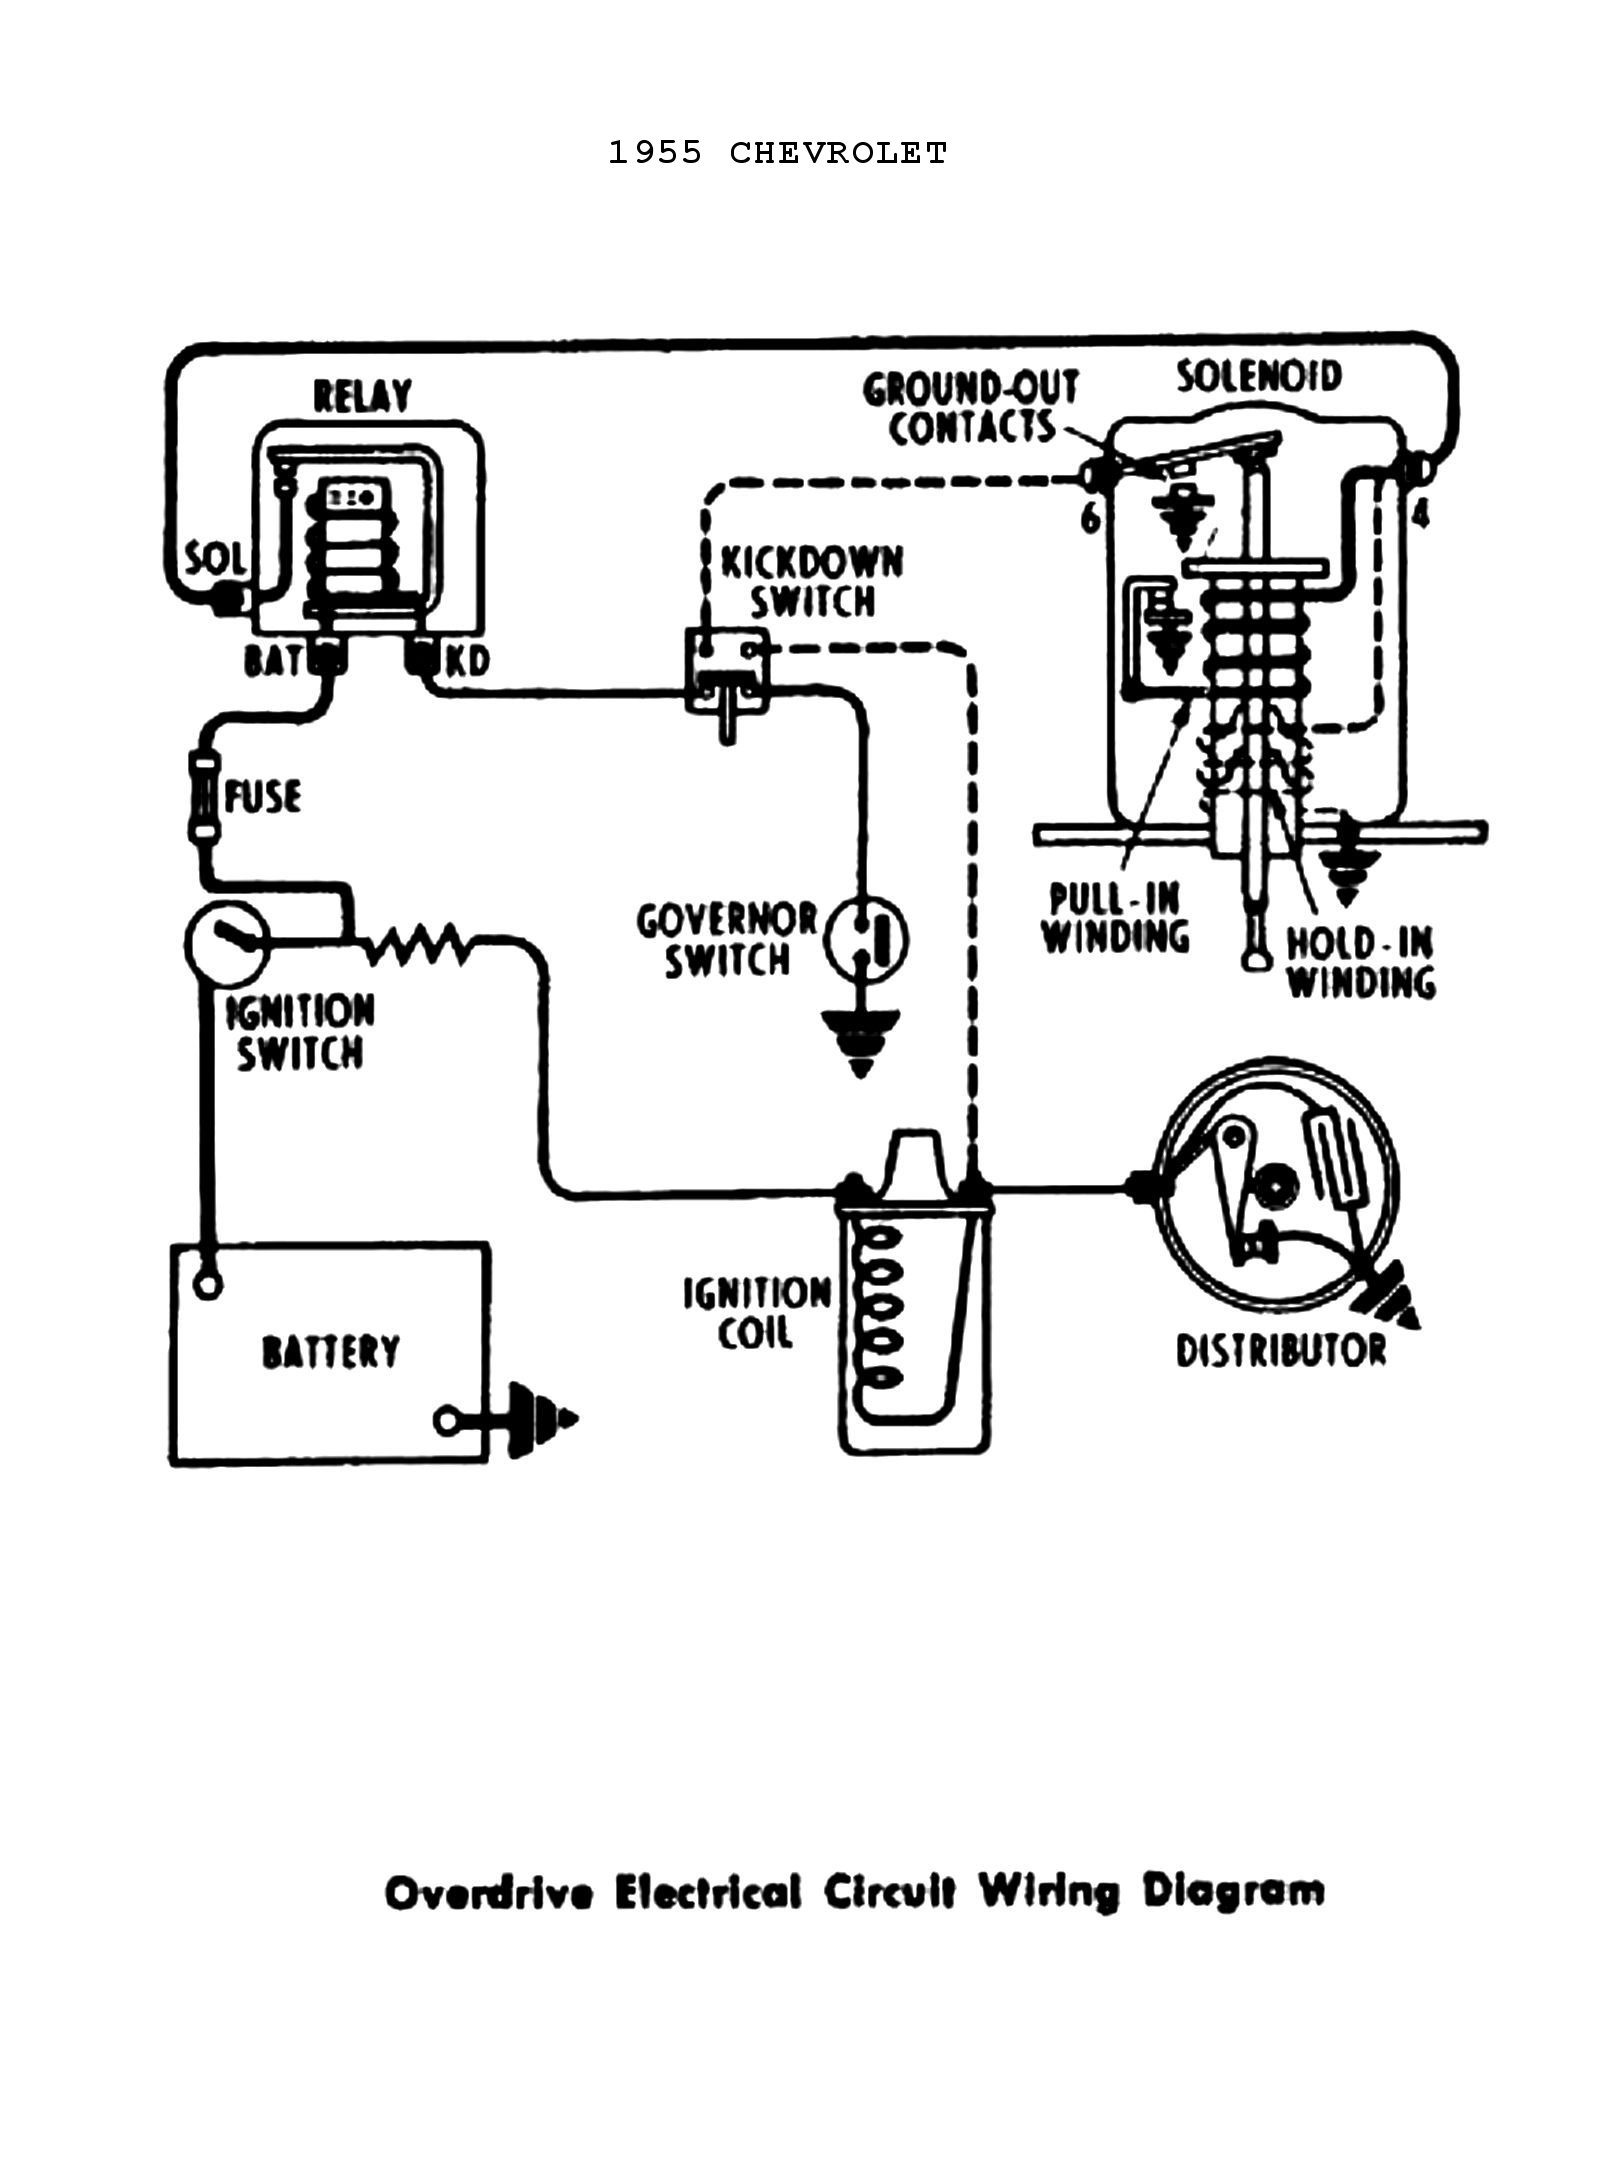 55odtrans1 chevy wiring diagrams chevy ignition switch diagram at crackthecode.co